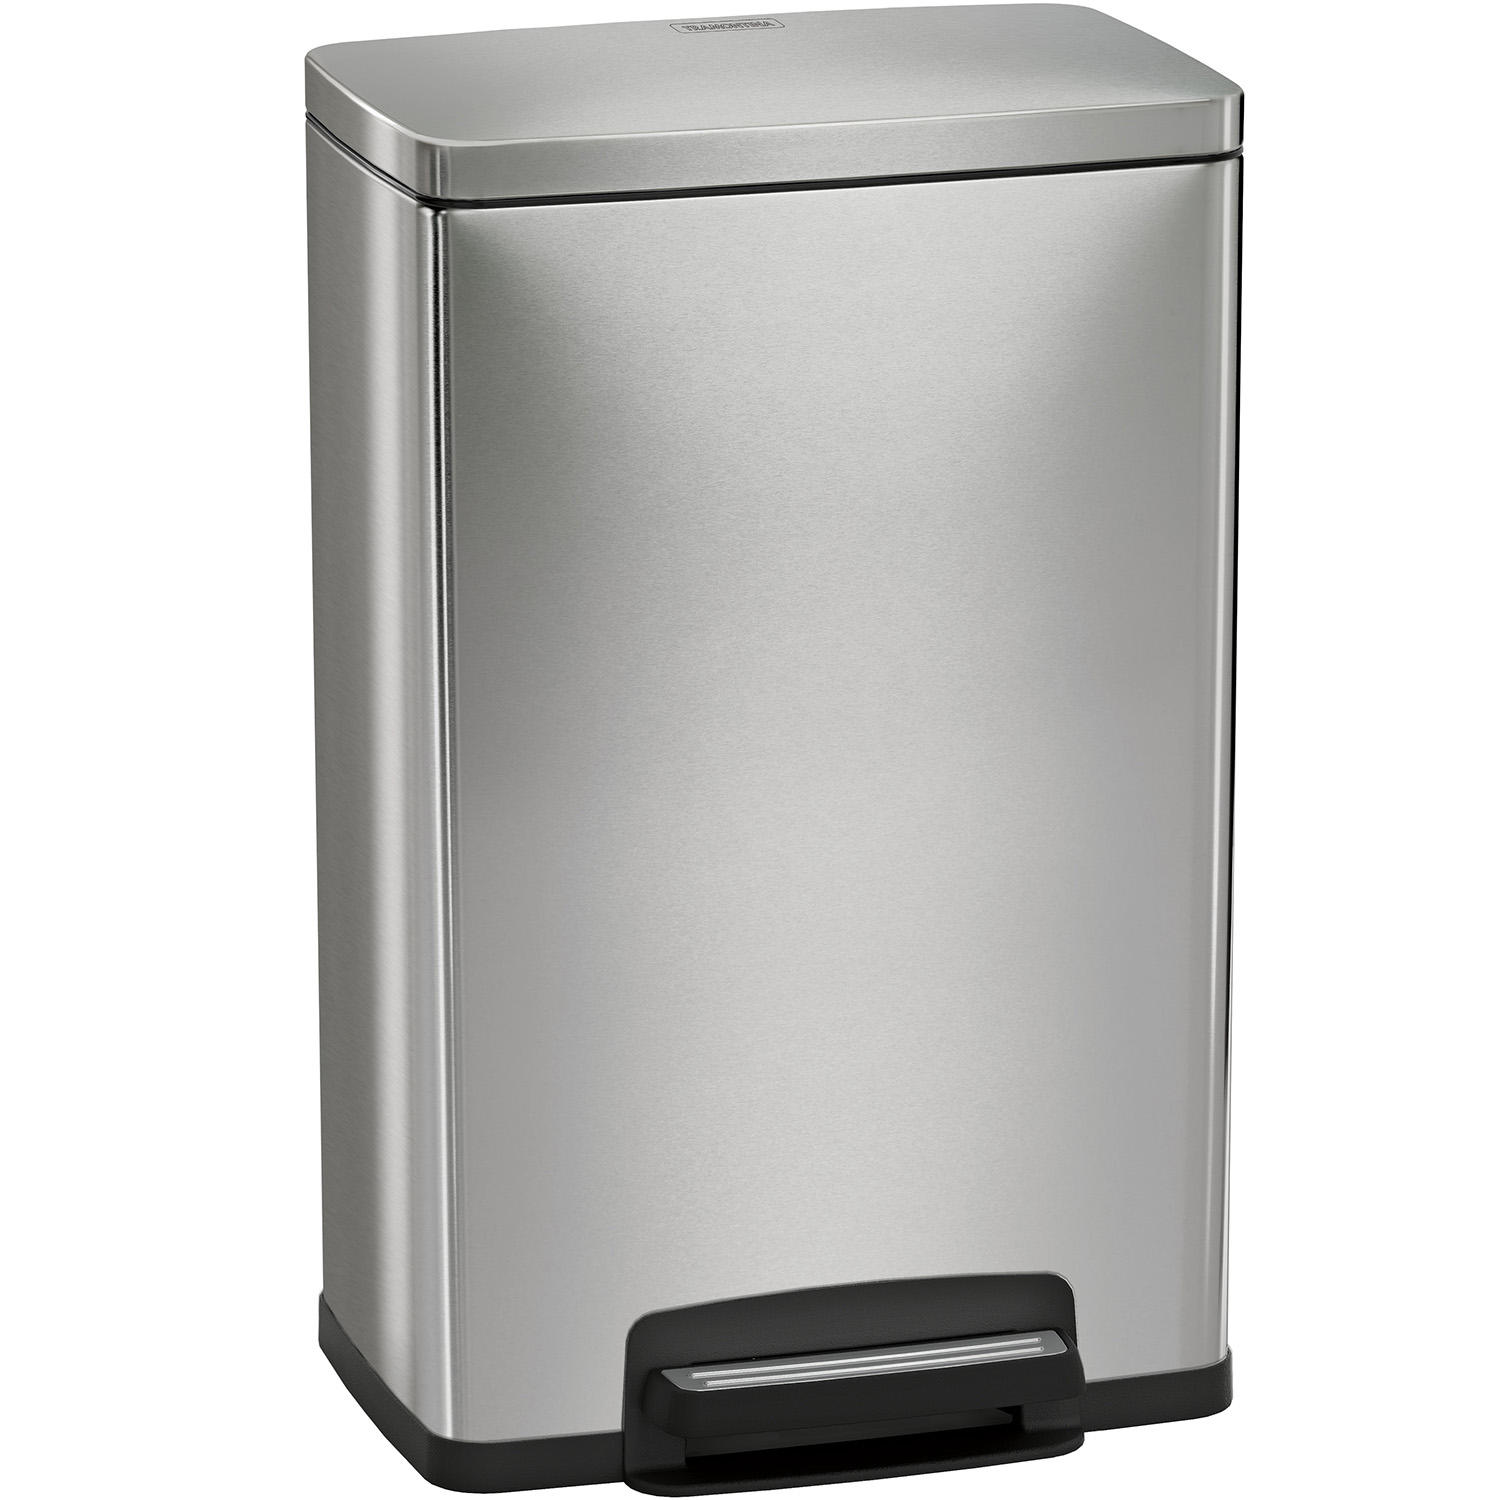 Tramontina 13 Gallon Stainless Steel Step Trash Can